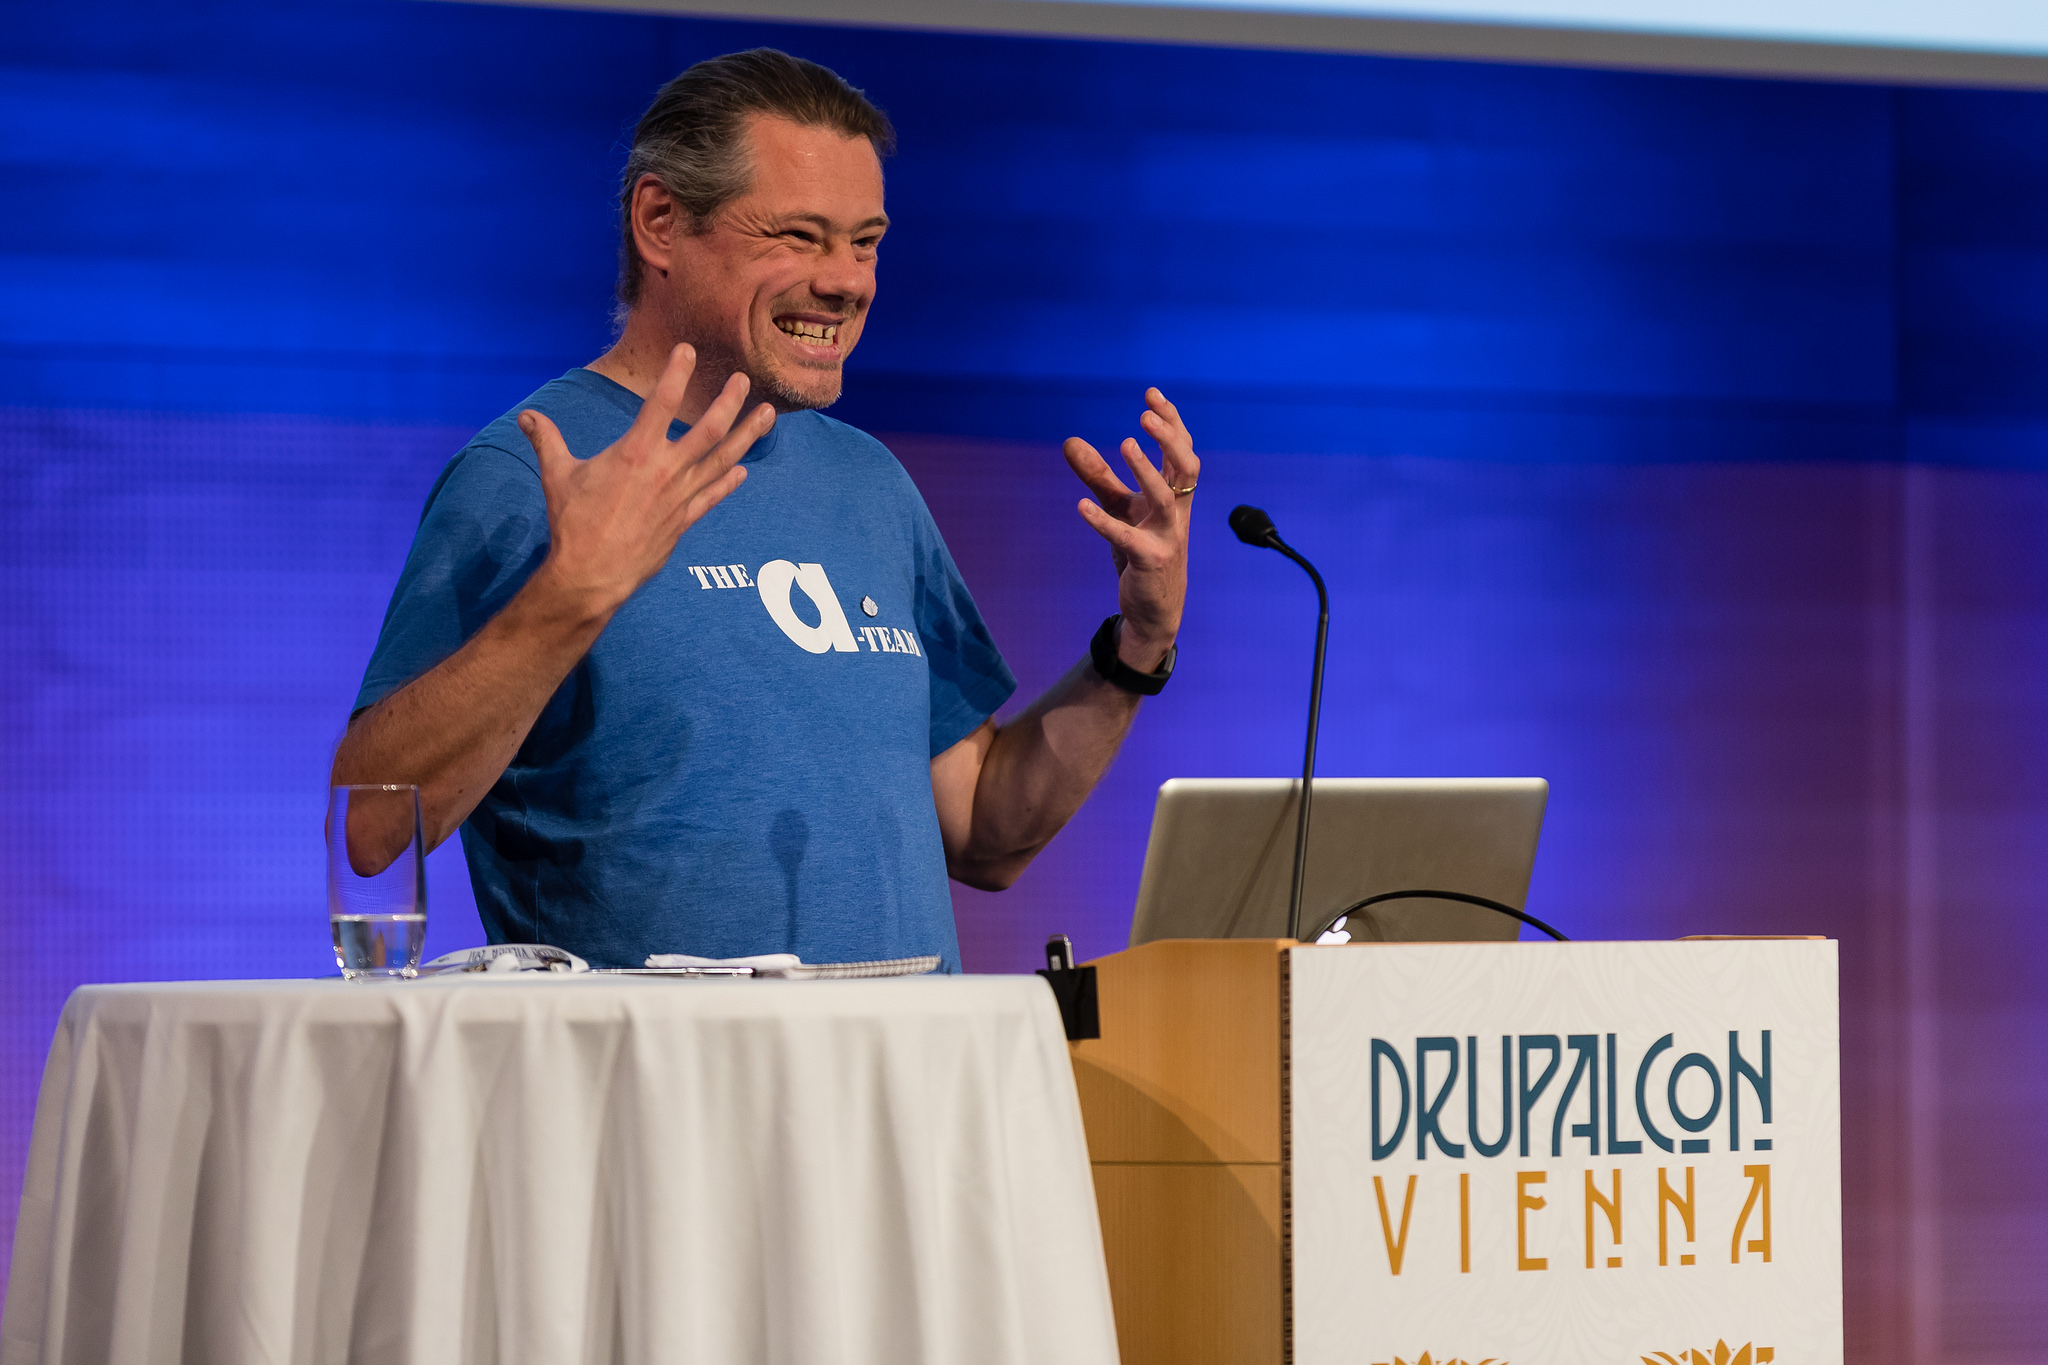 Anthony speaking at DrupalCon Vienna